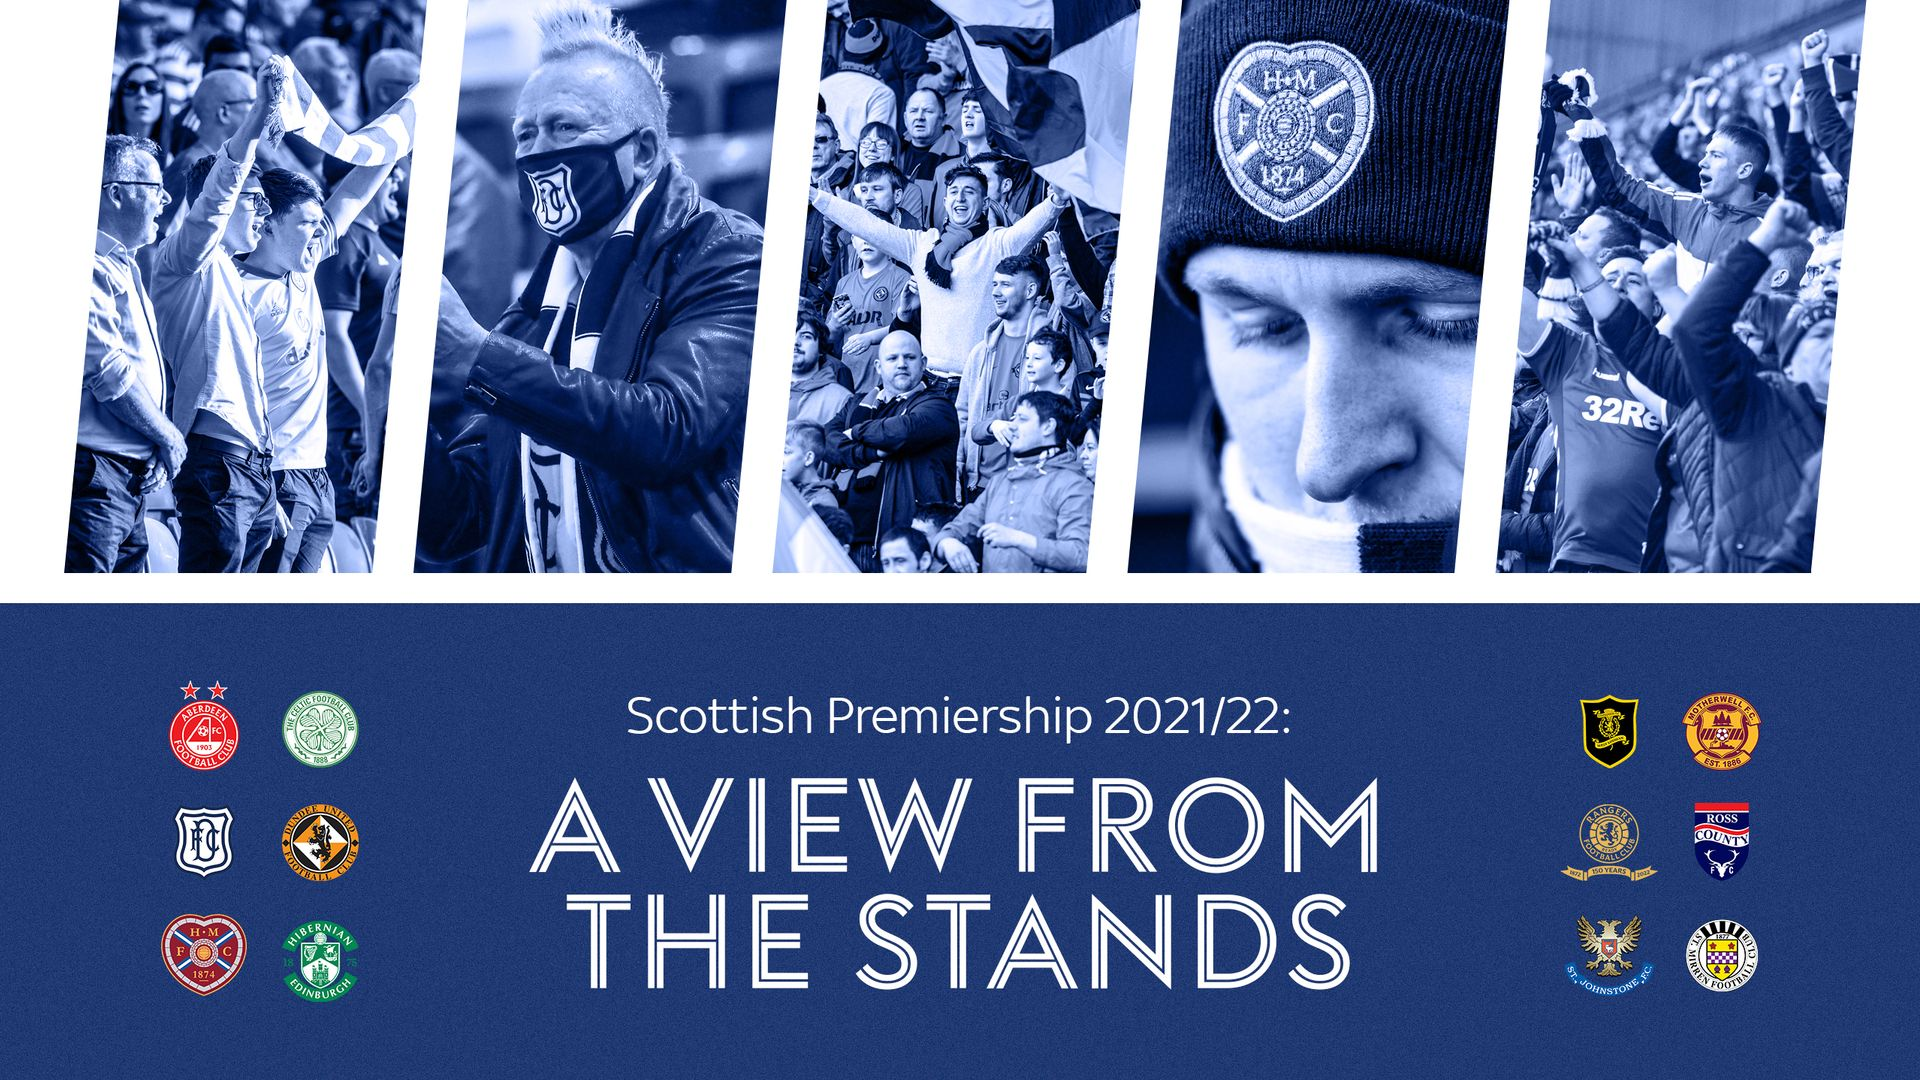 Scottish Premiership 2021/22: View from the stands